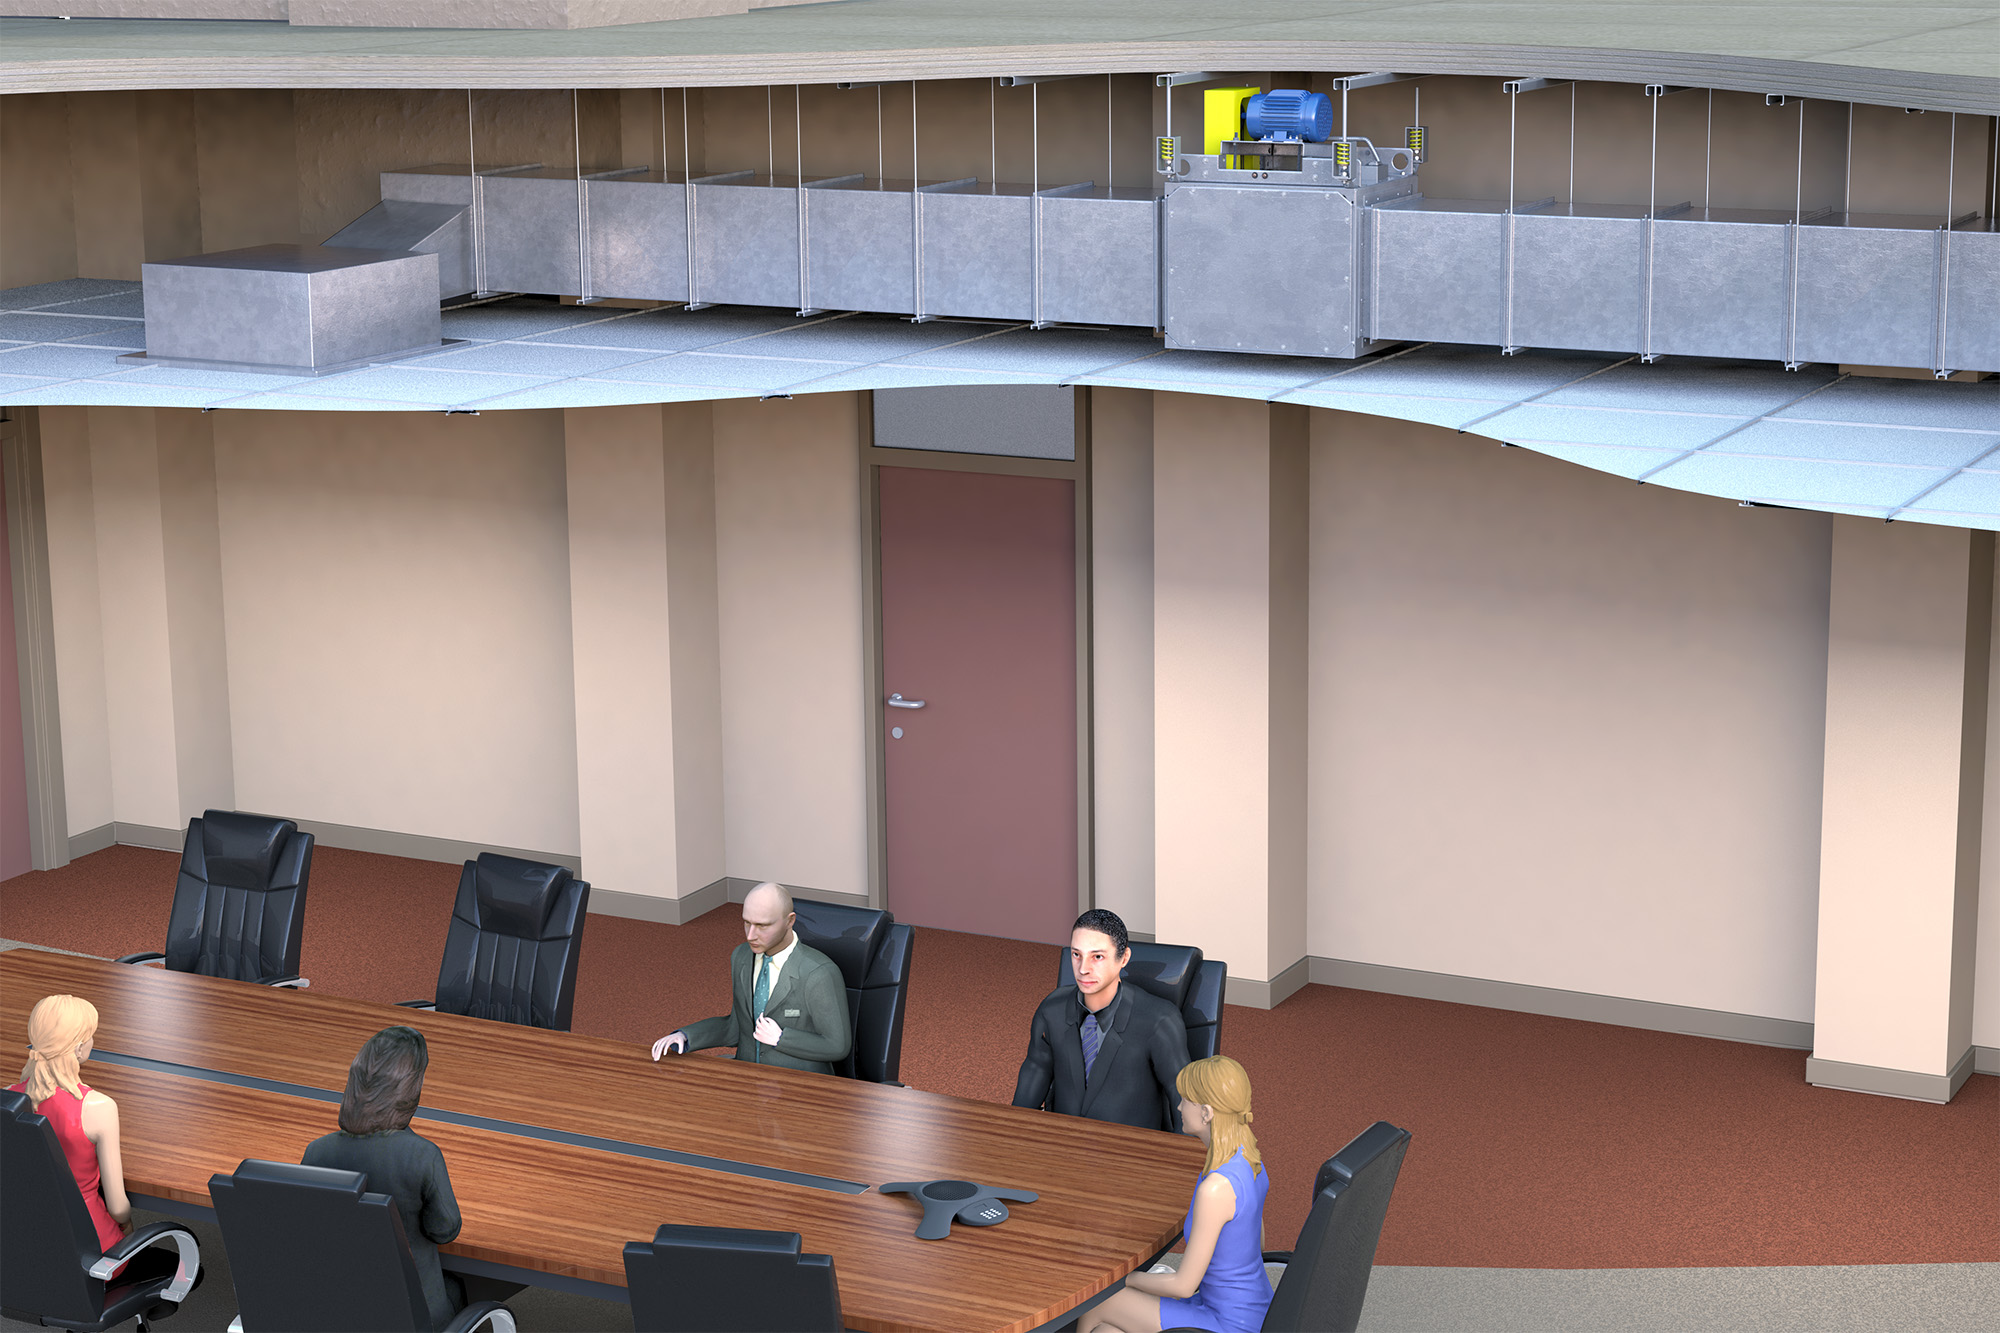 SCBD Conference Room (Application) Modo Rendering